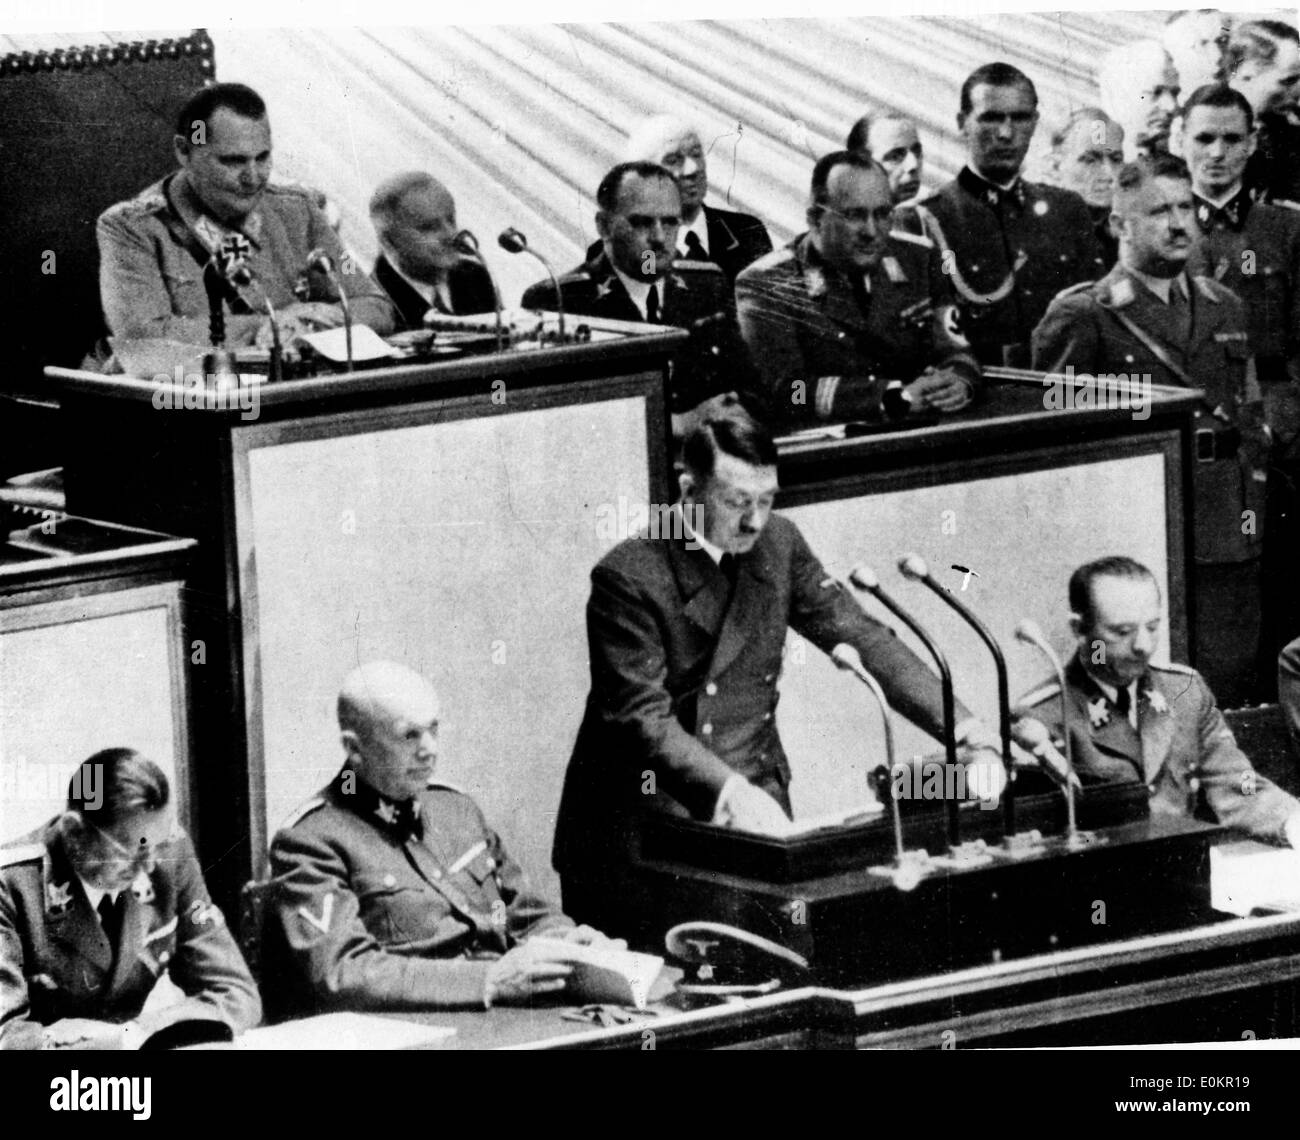 Adolf Hitler during a meeting at the Reichstag - Stock Image